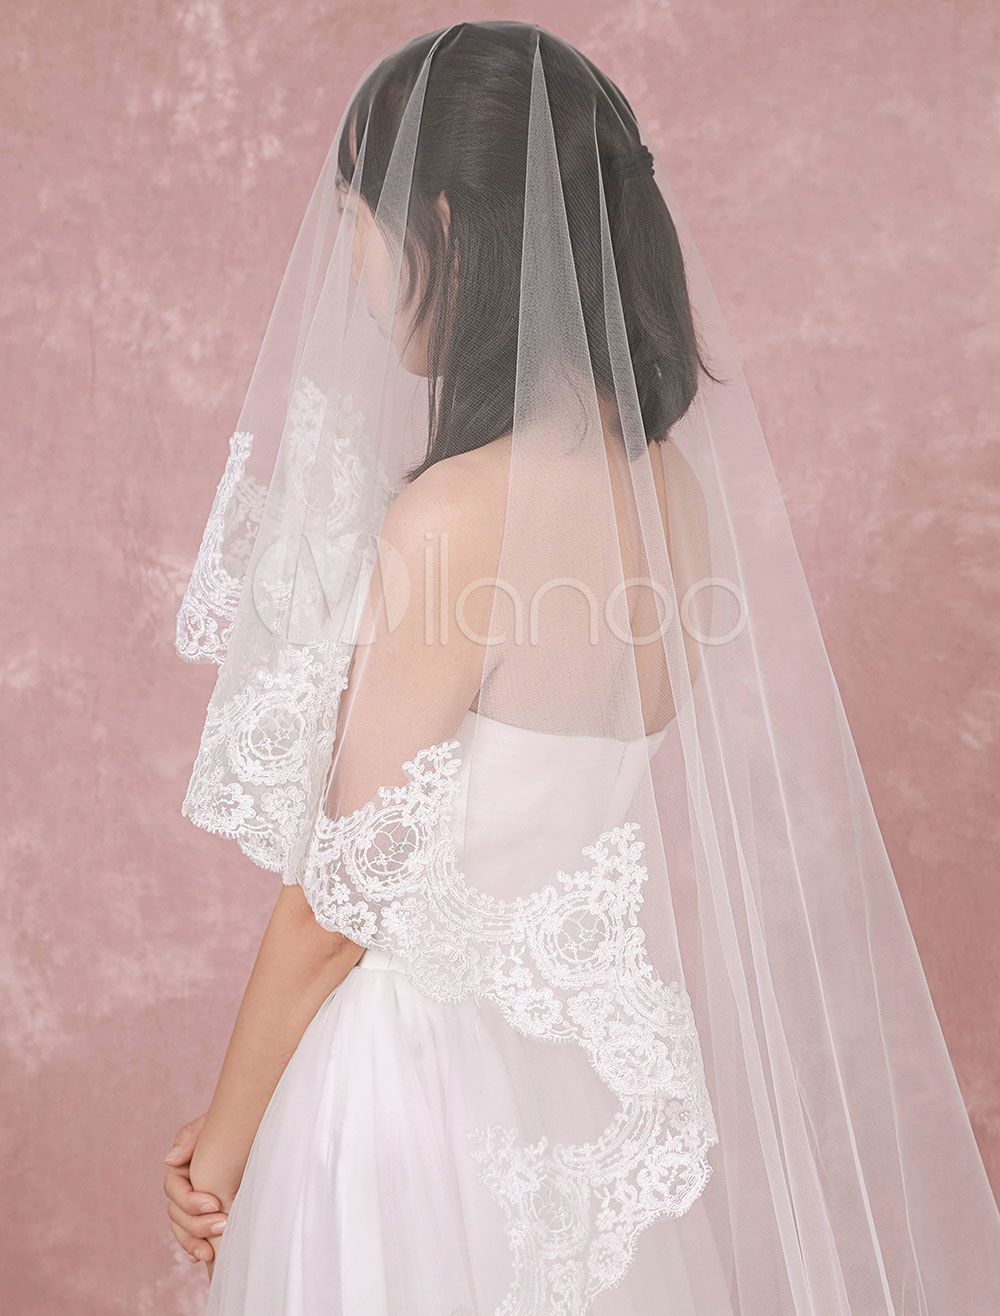 Buy Cathedral Wedding Veil Tulle Lace Applique Edge One-Tier Bridal Veil for $36.89 in Milanoo store